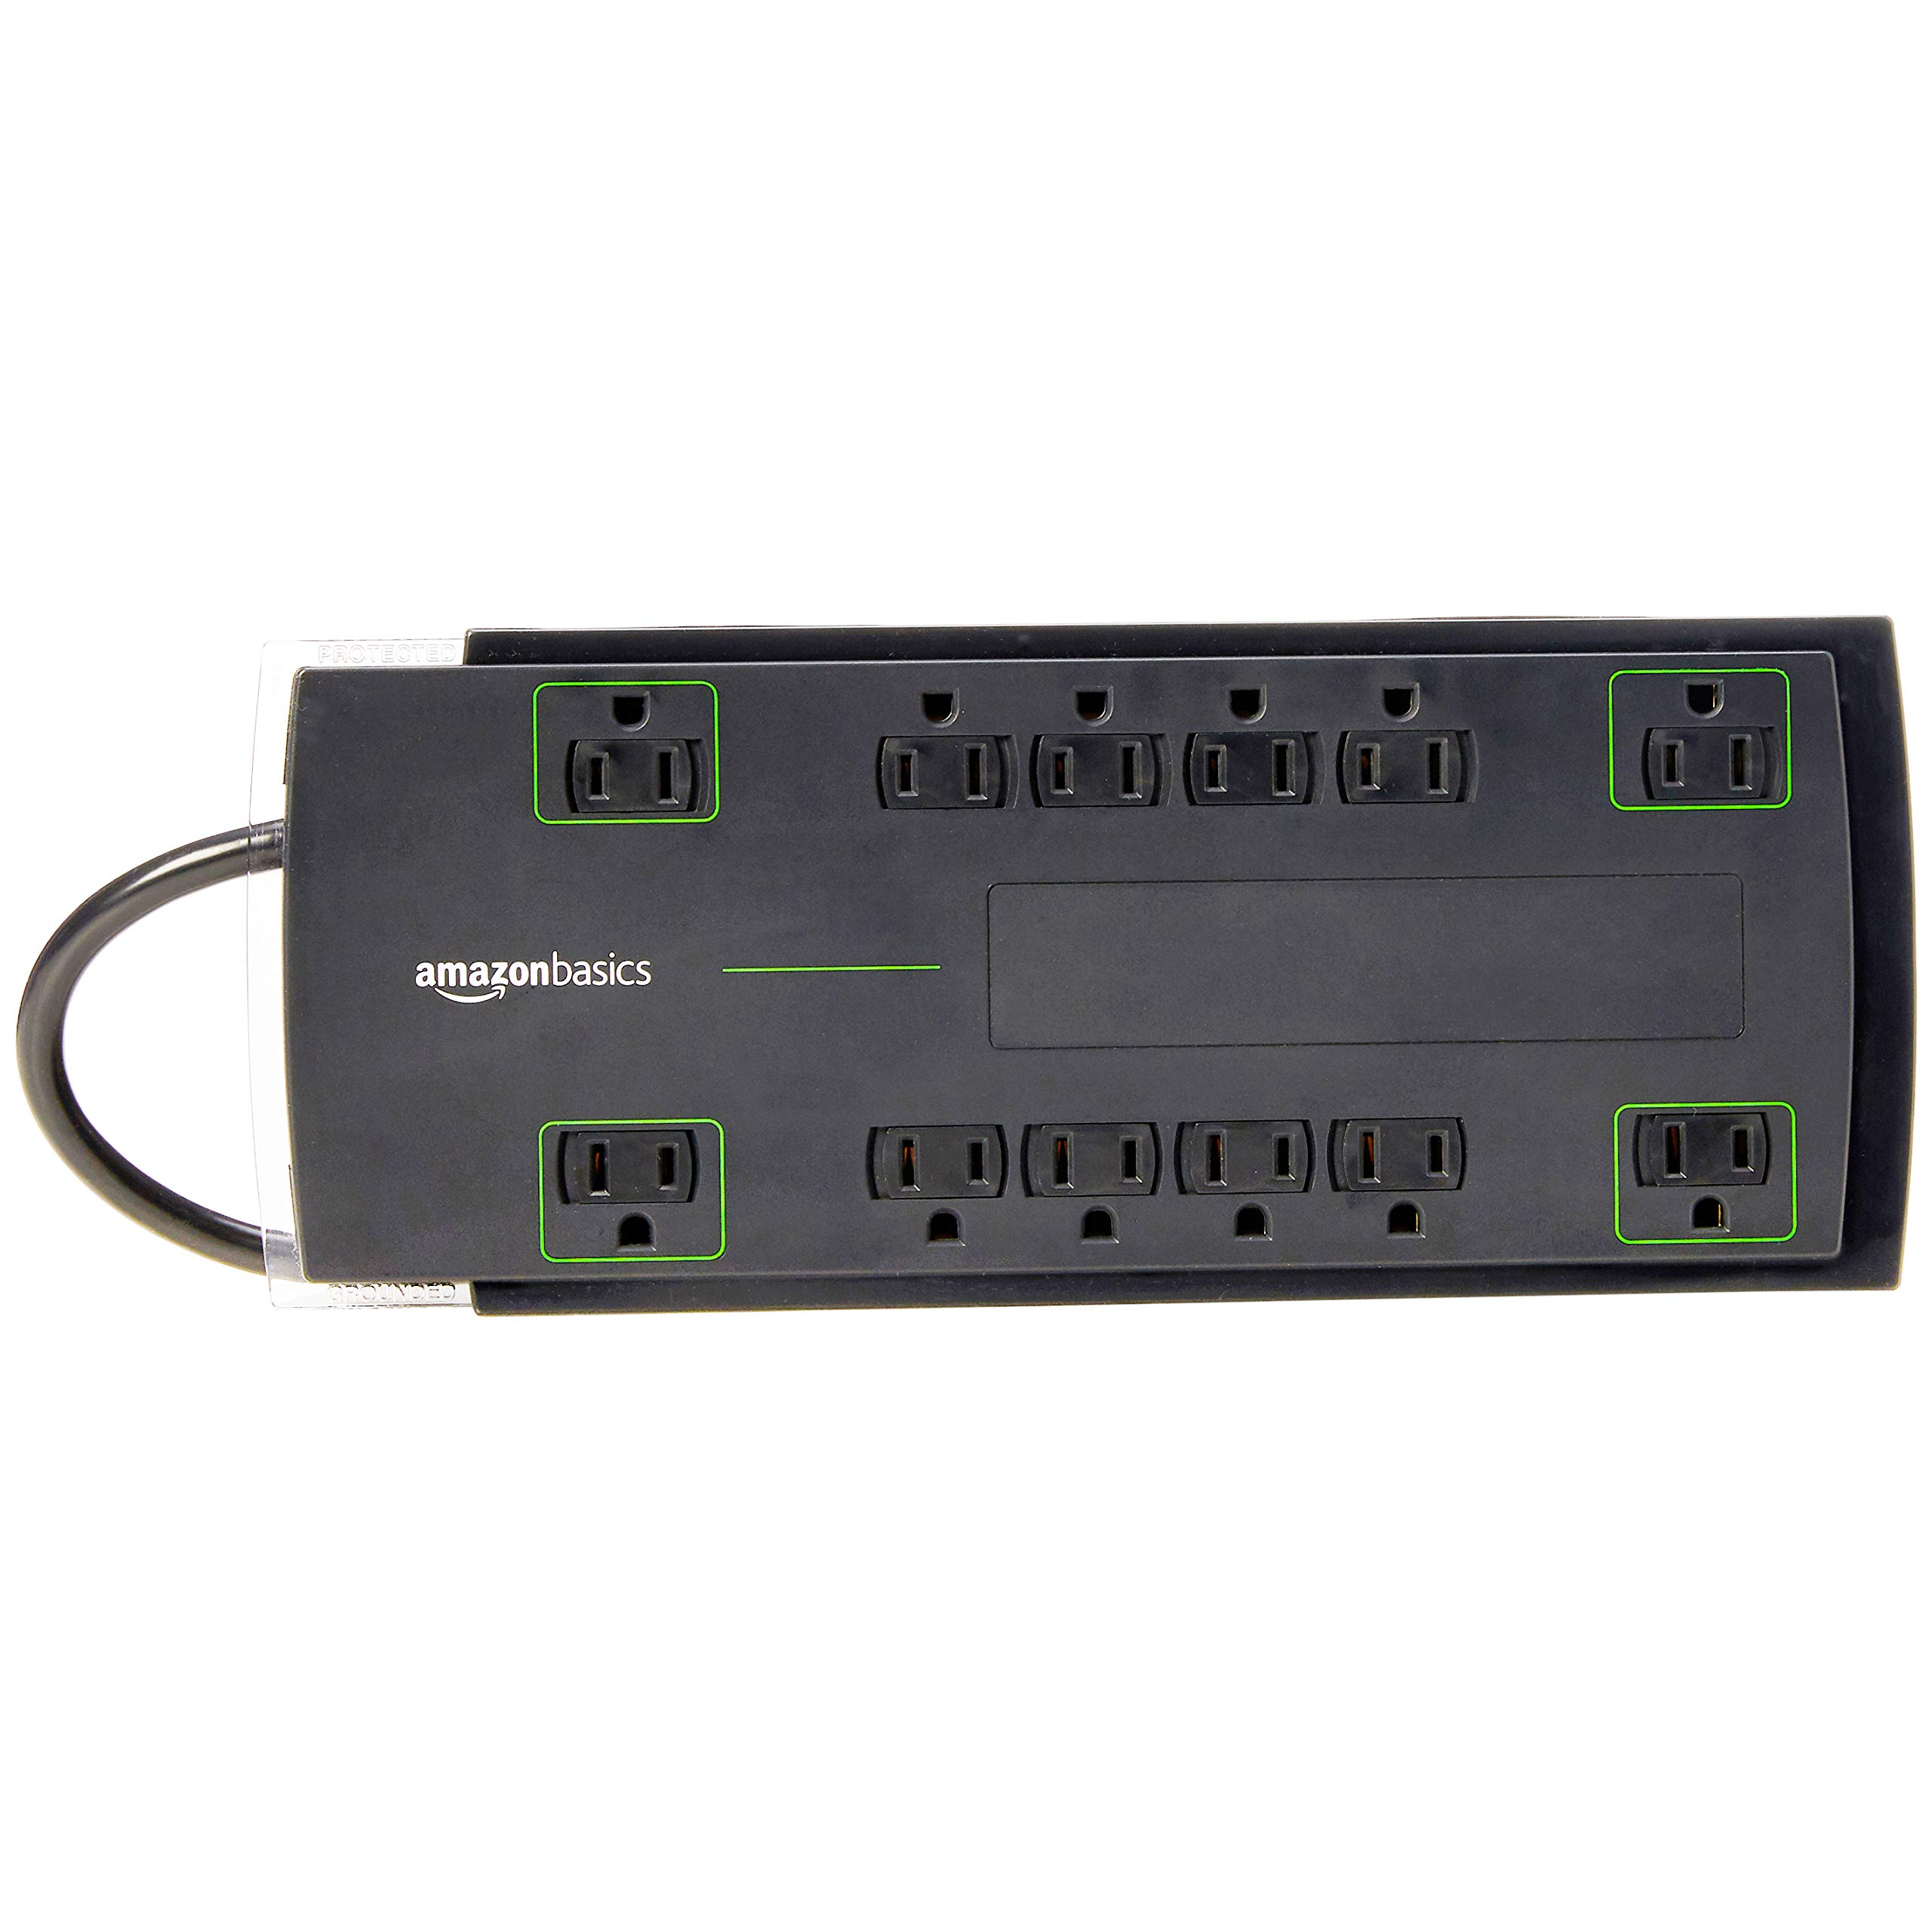 AmazonBasics 12-Outlet Surge Protector | 4,320 Joule, 8-Foot Cord